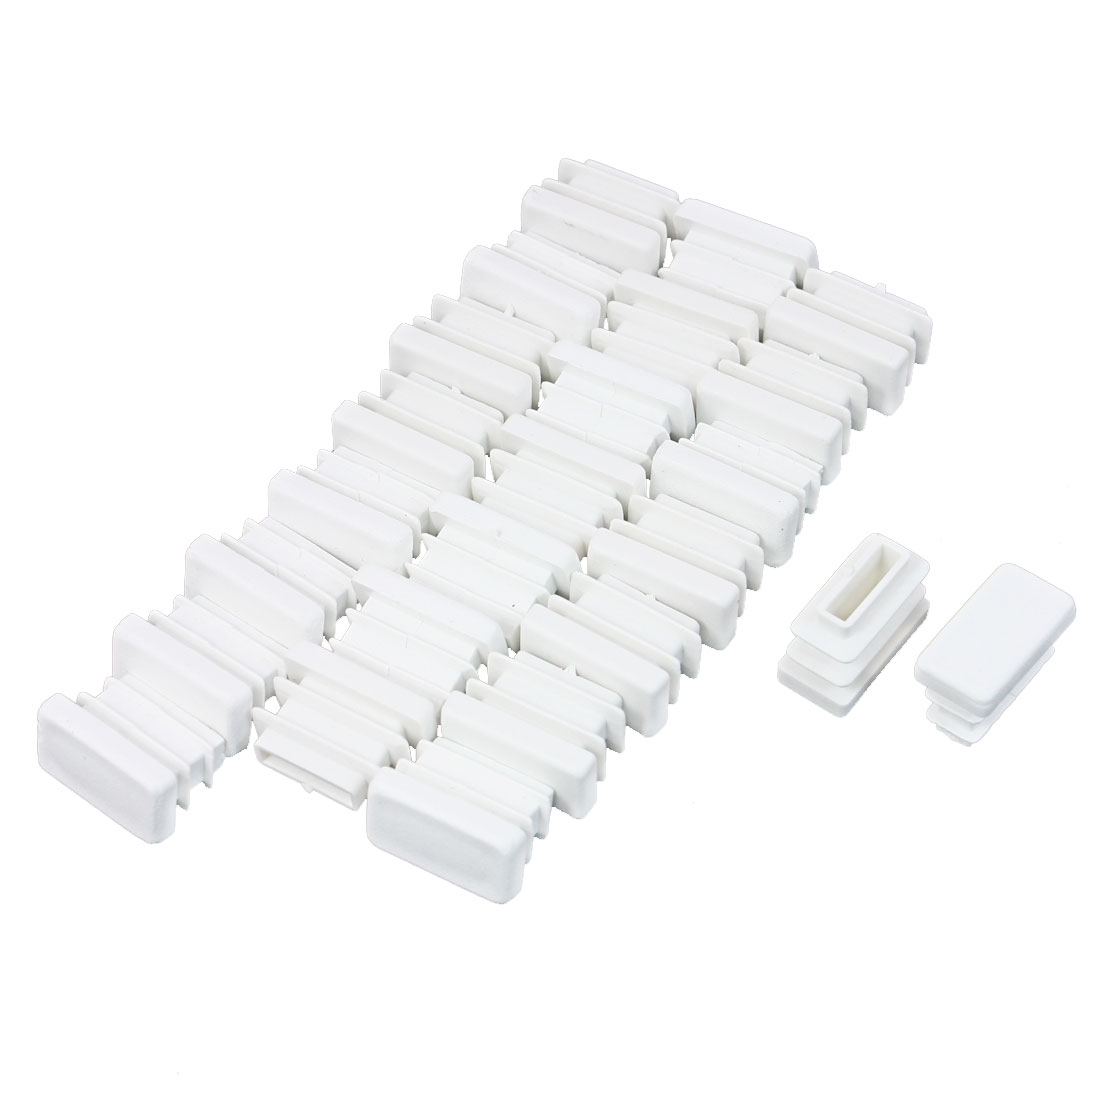 24 Pcs 10mm x 20mm Plastic Blanking End Caps Rectangle Tubing Tube Insert White